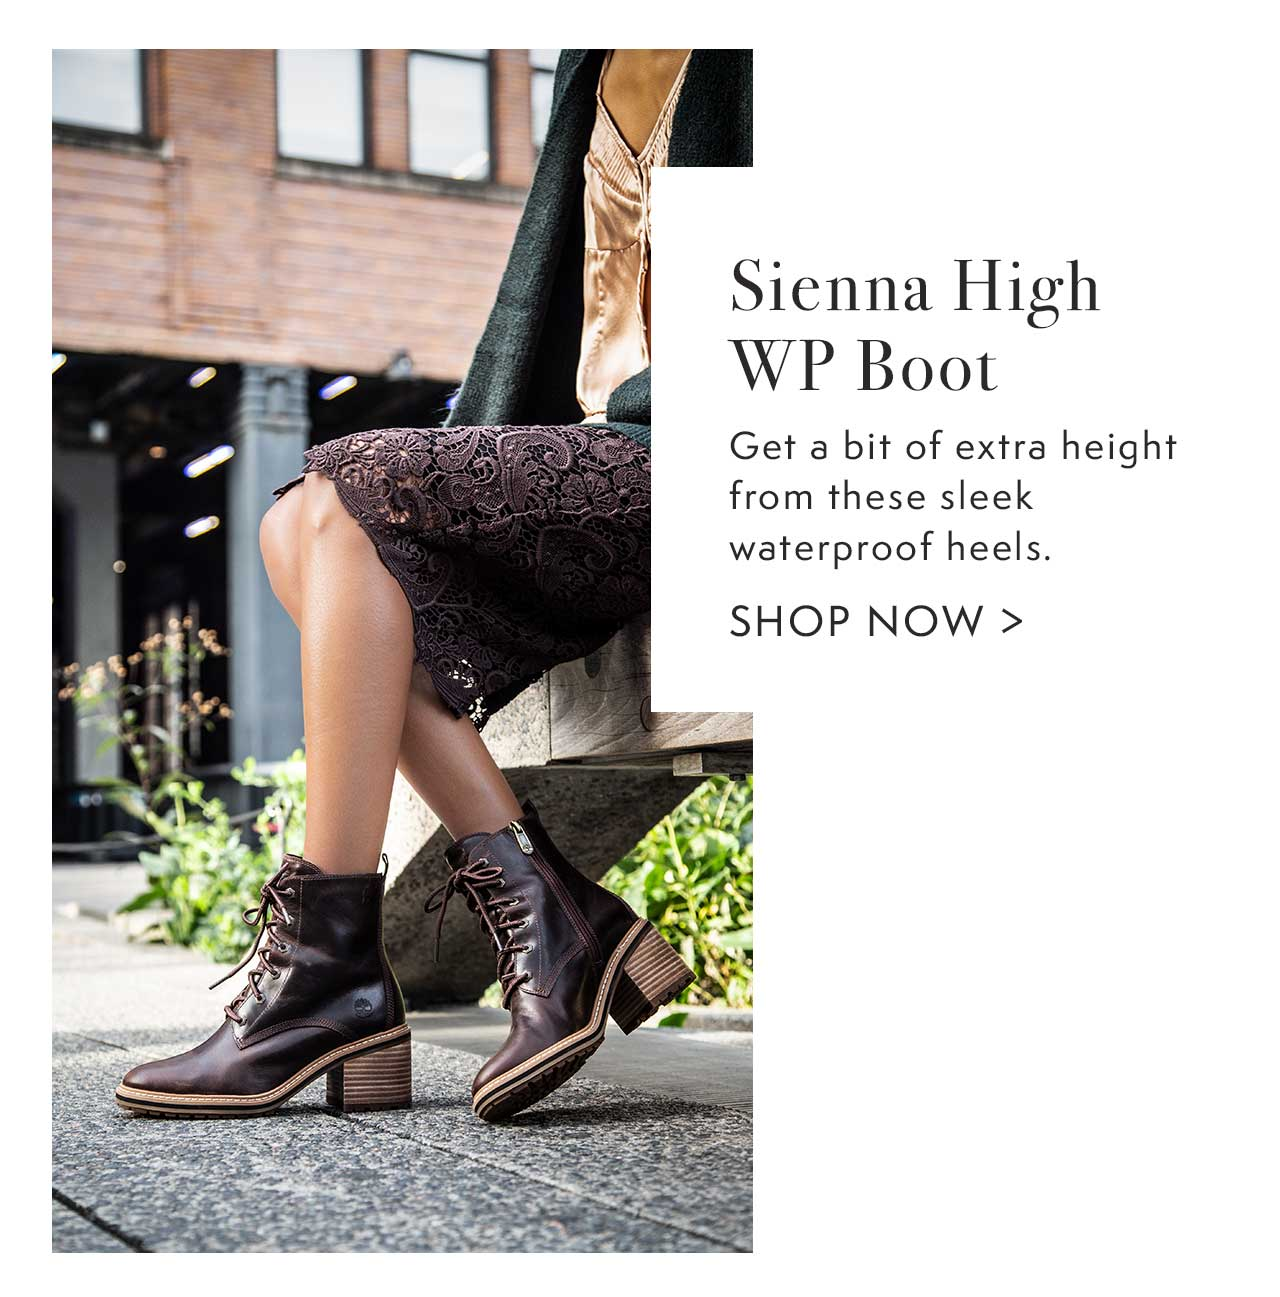 Sienna High WP Boot                                                 Shop Now